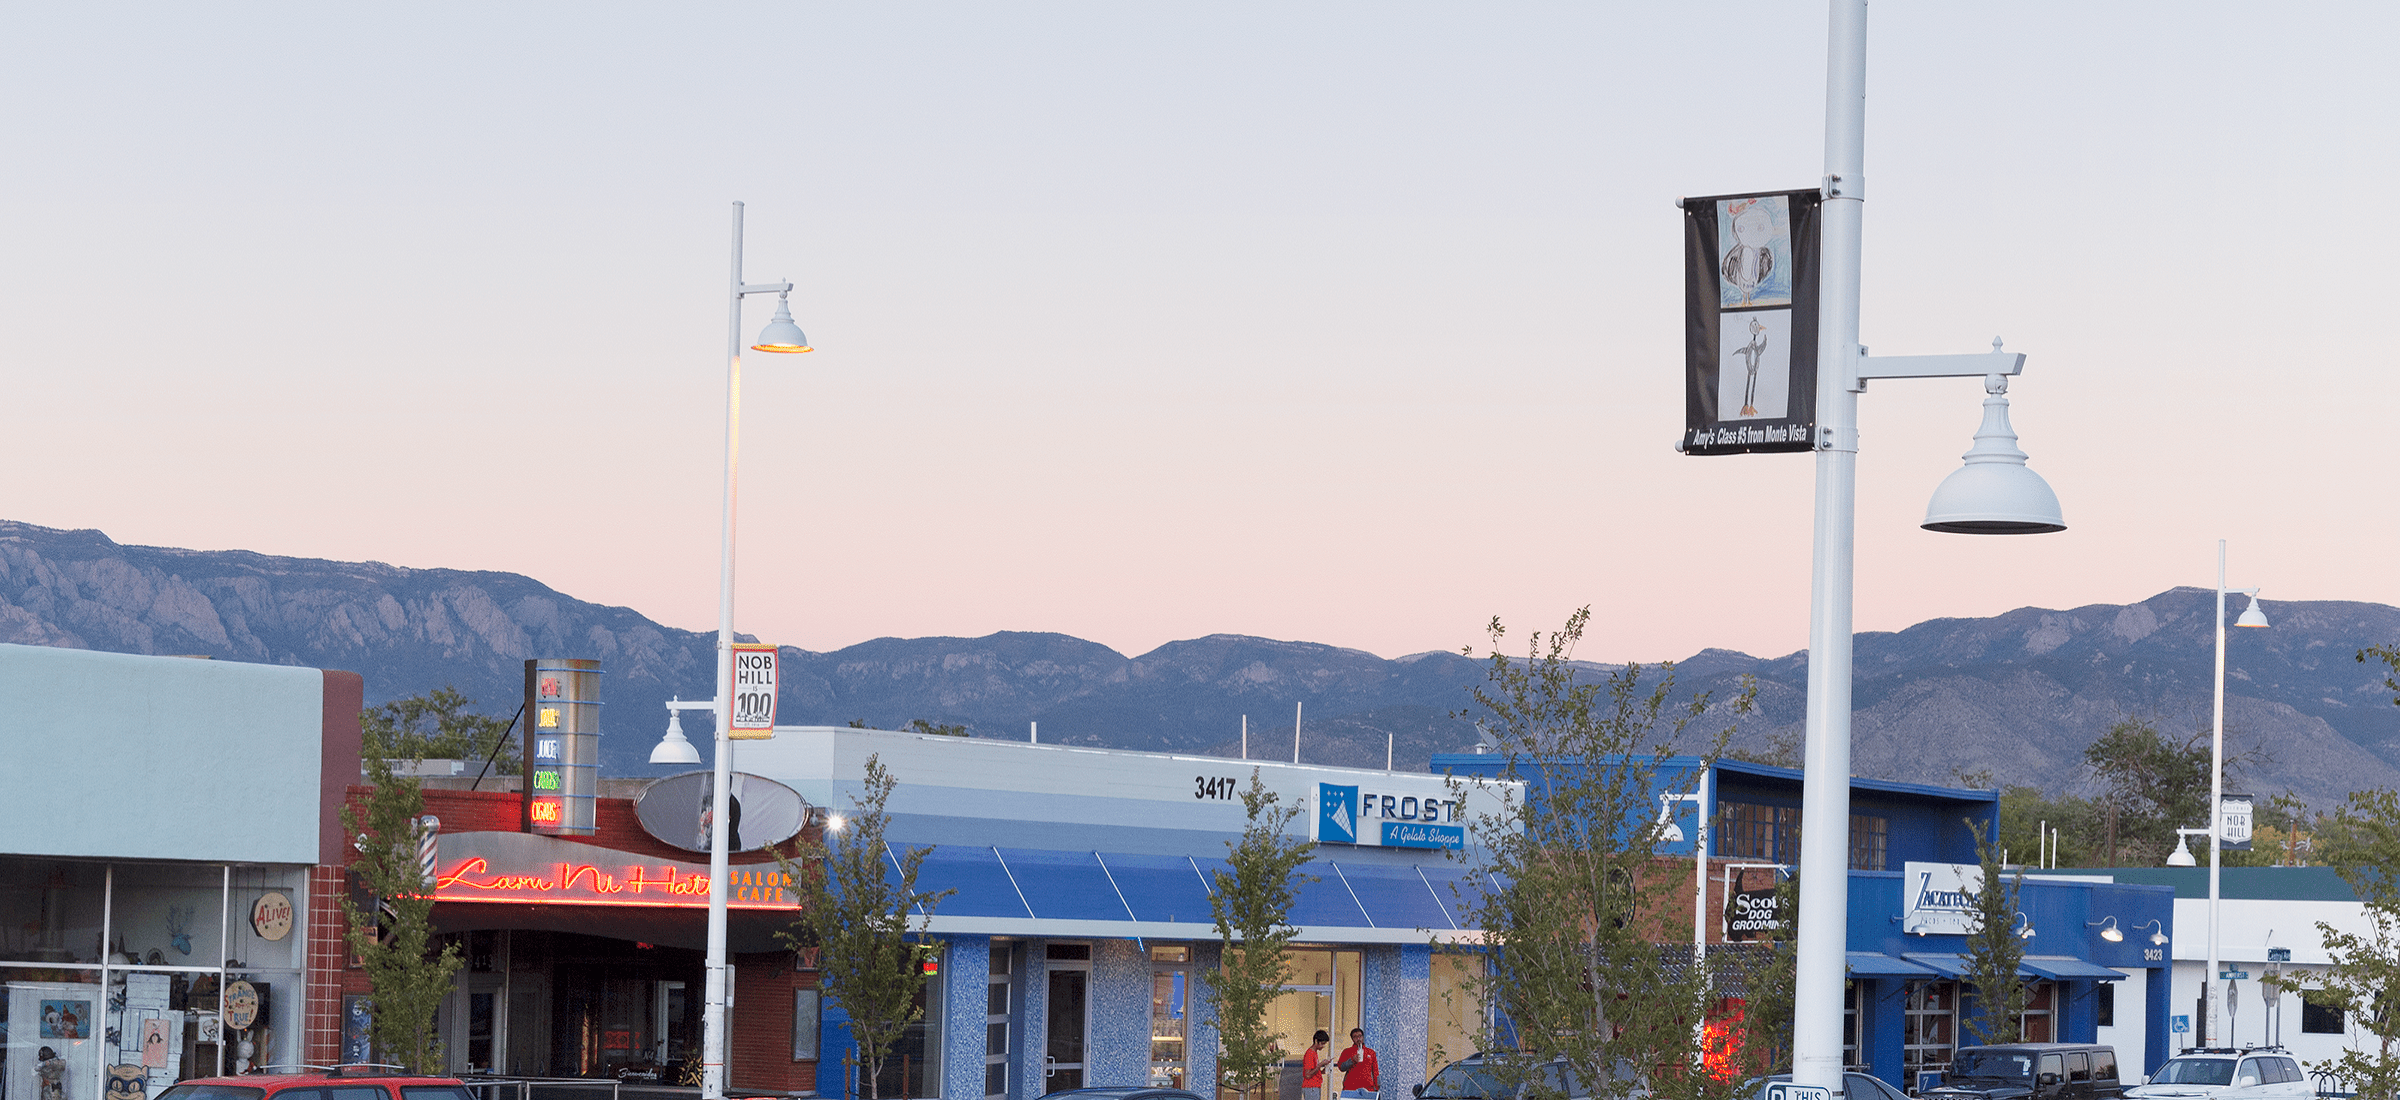 Visit The Nob Hill Shop And Stroll In Albuquerque